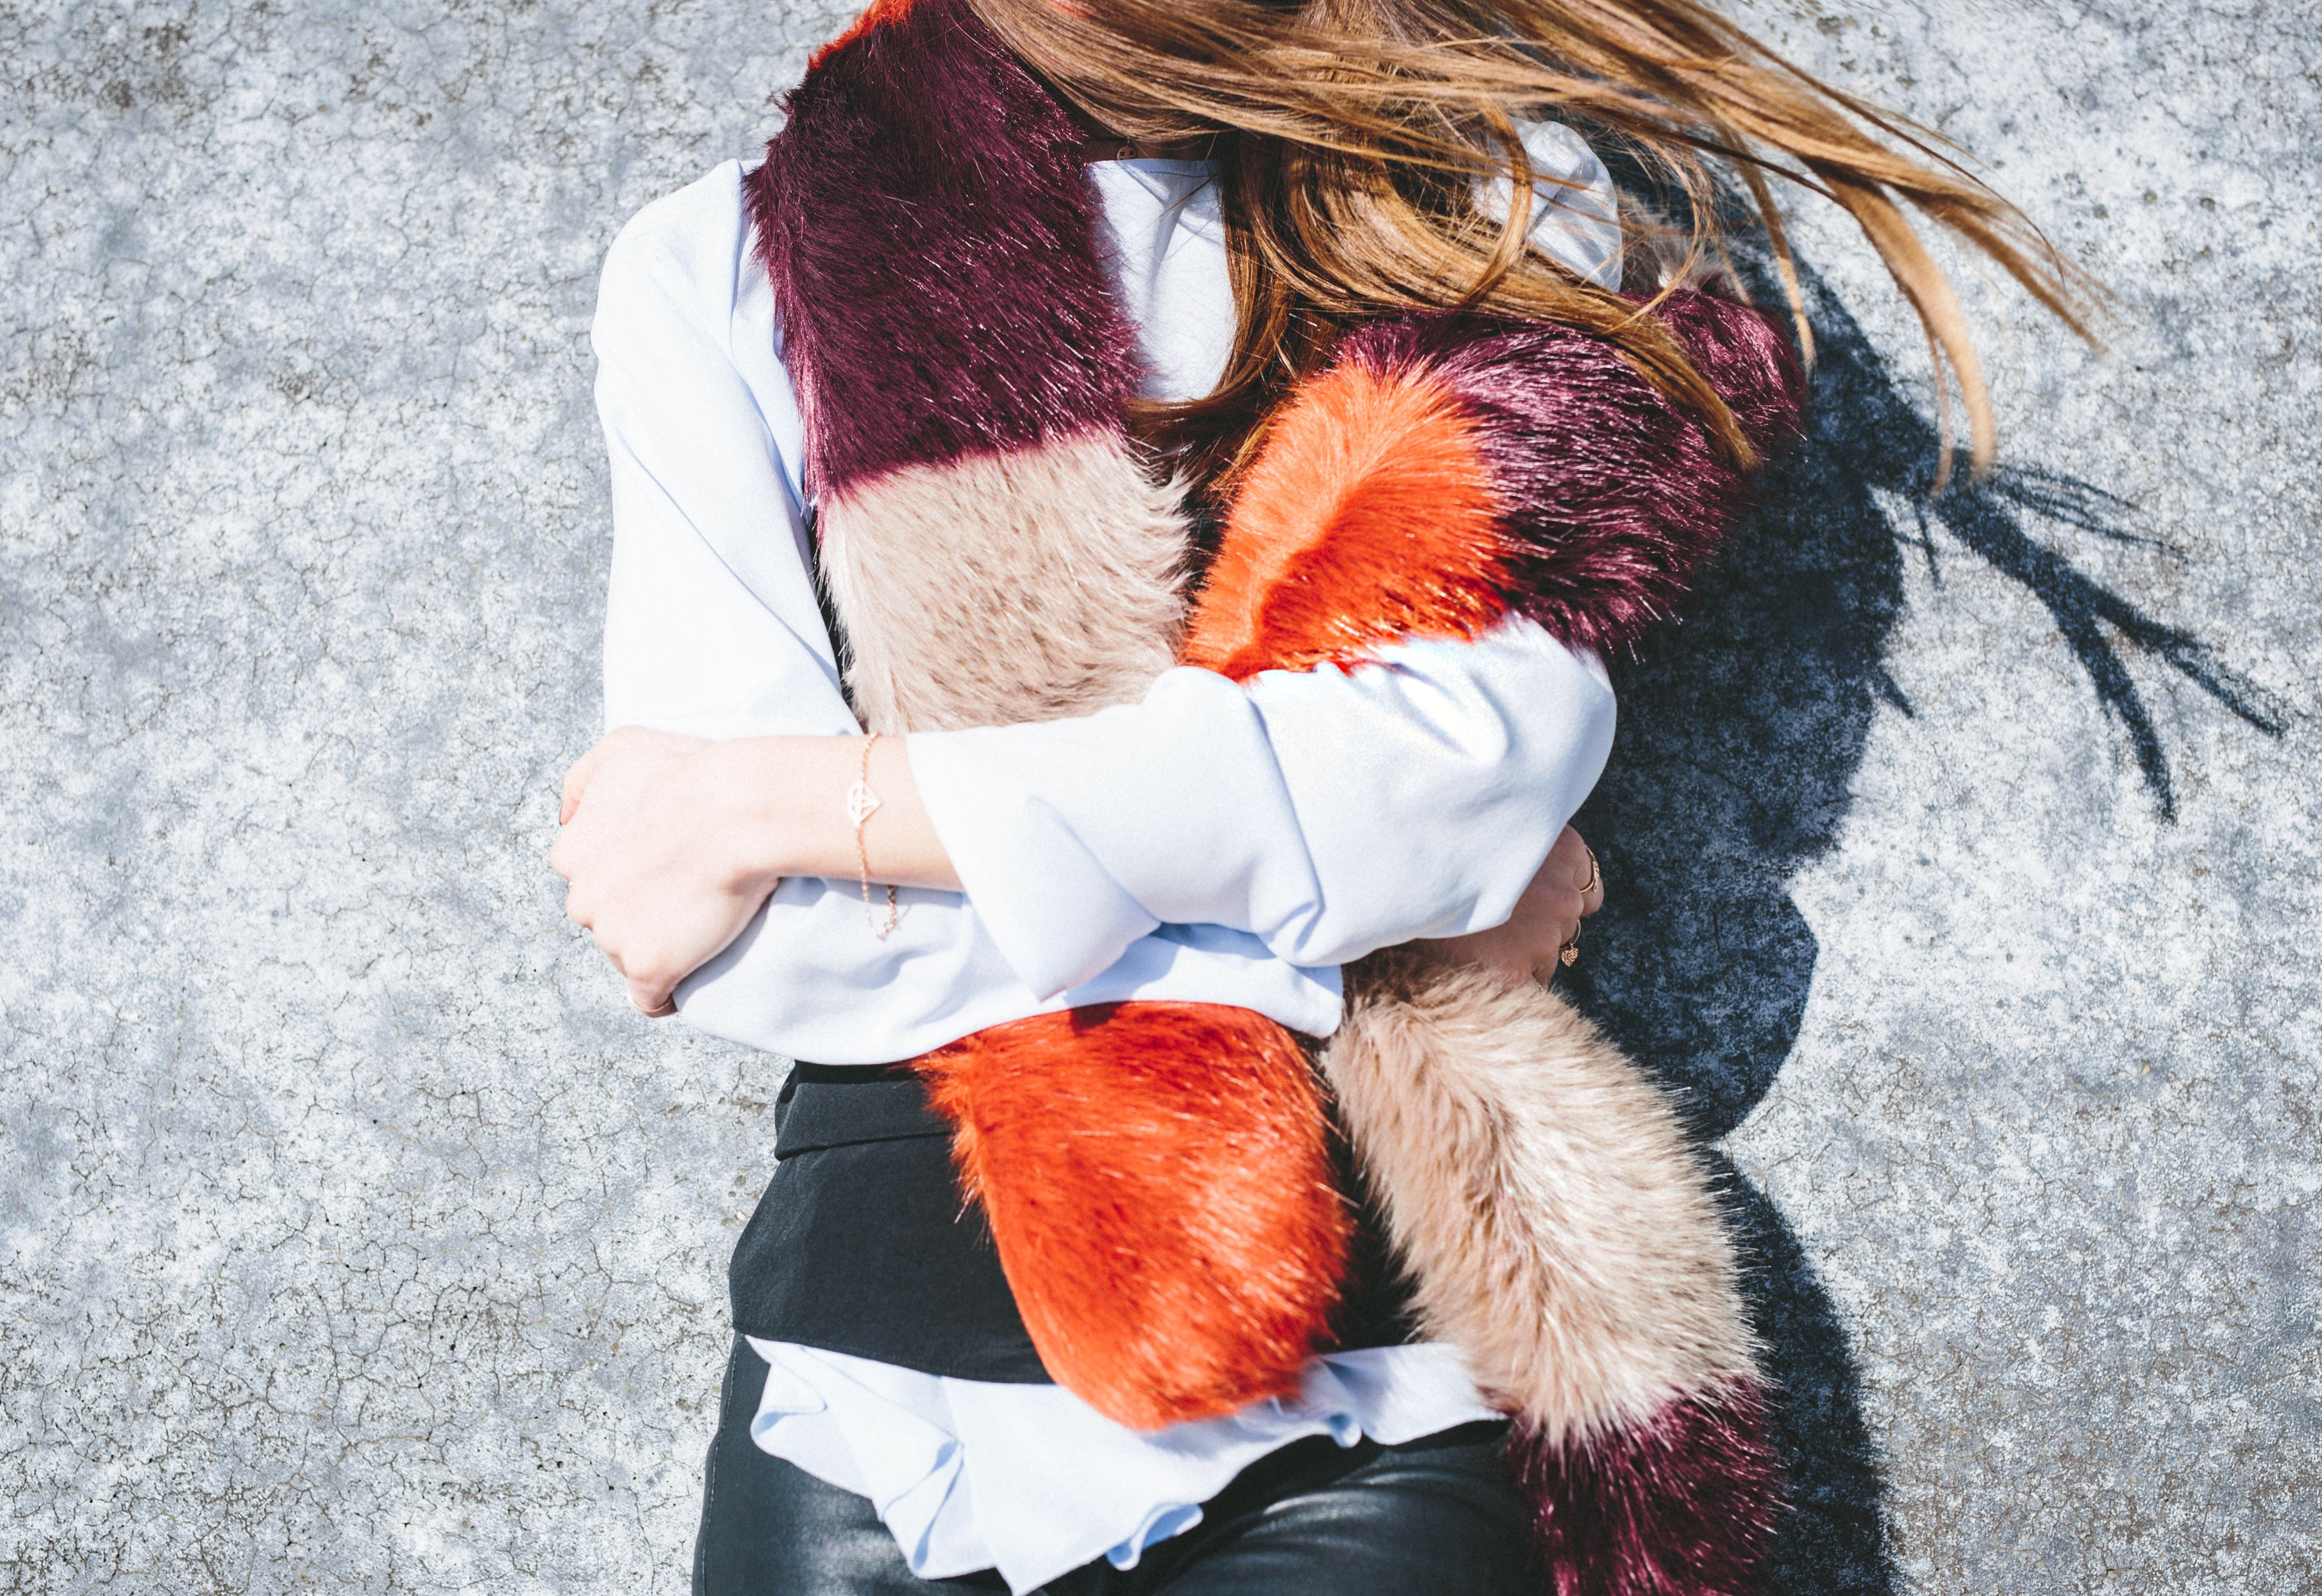 AYS_YUVA_LEATHER_PANTS_STAND_OFFICIAL_FAKE_FUR_05